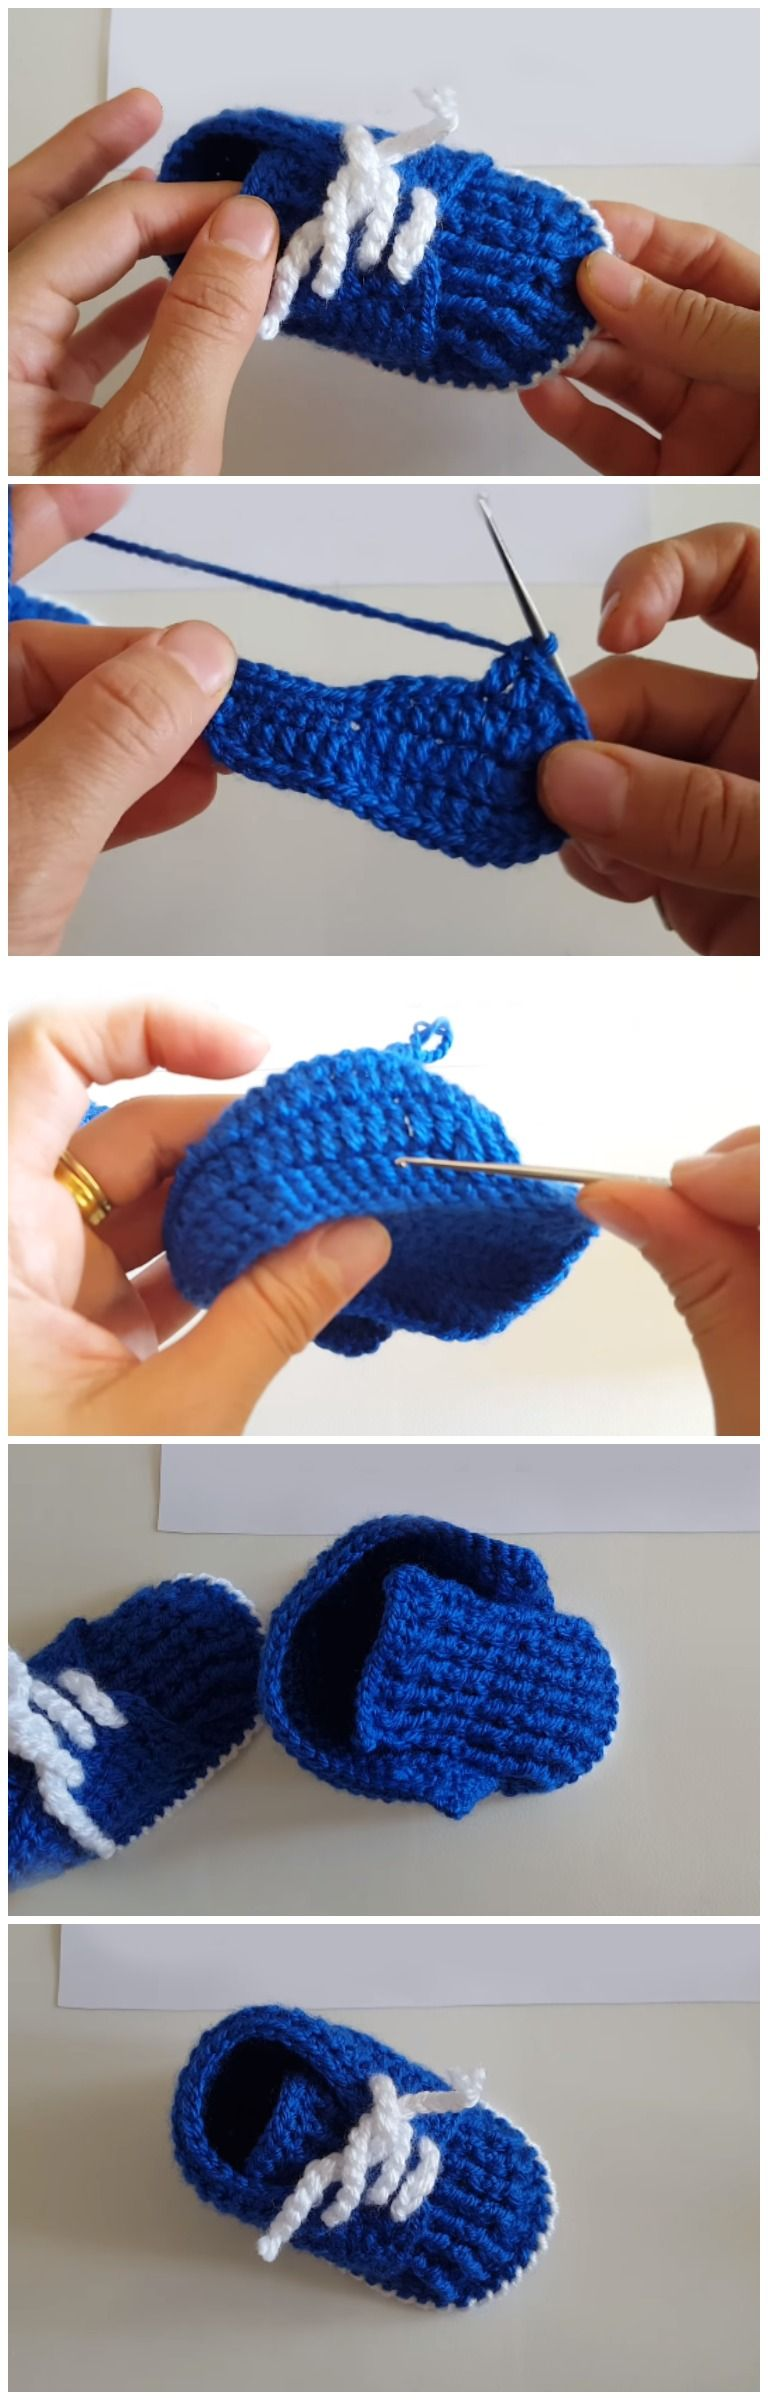 Easy And Beautiful Baby Booties Free Pattern [Video] | Baby schuhe ...